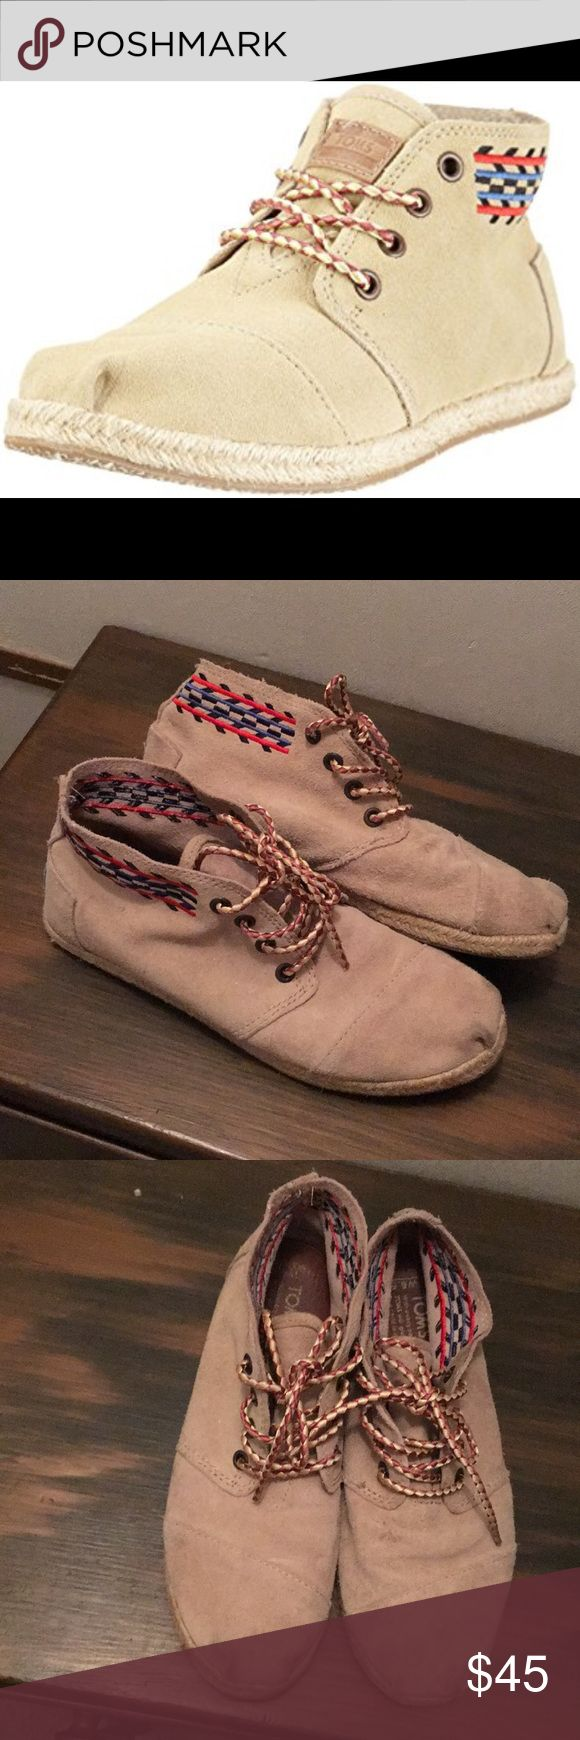 TOMS Chukka botas - highlands tribal boots Some wear but still in great condition. These shoes are awesome and super comfy and soft. Toms Shoes